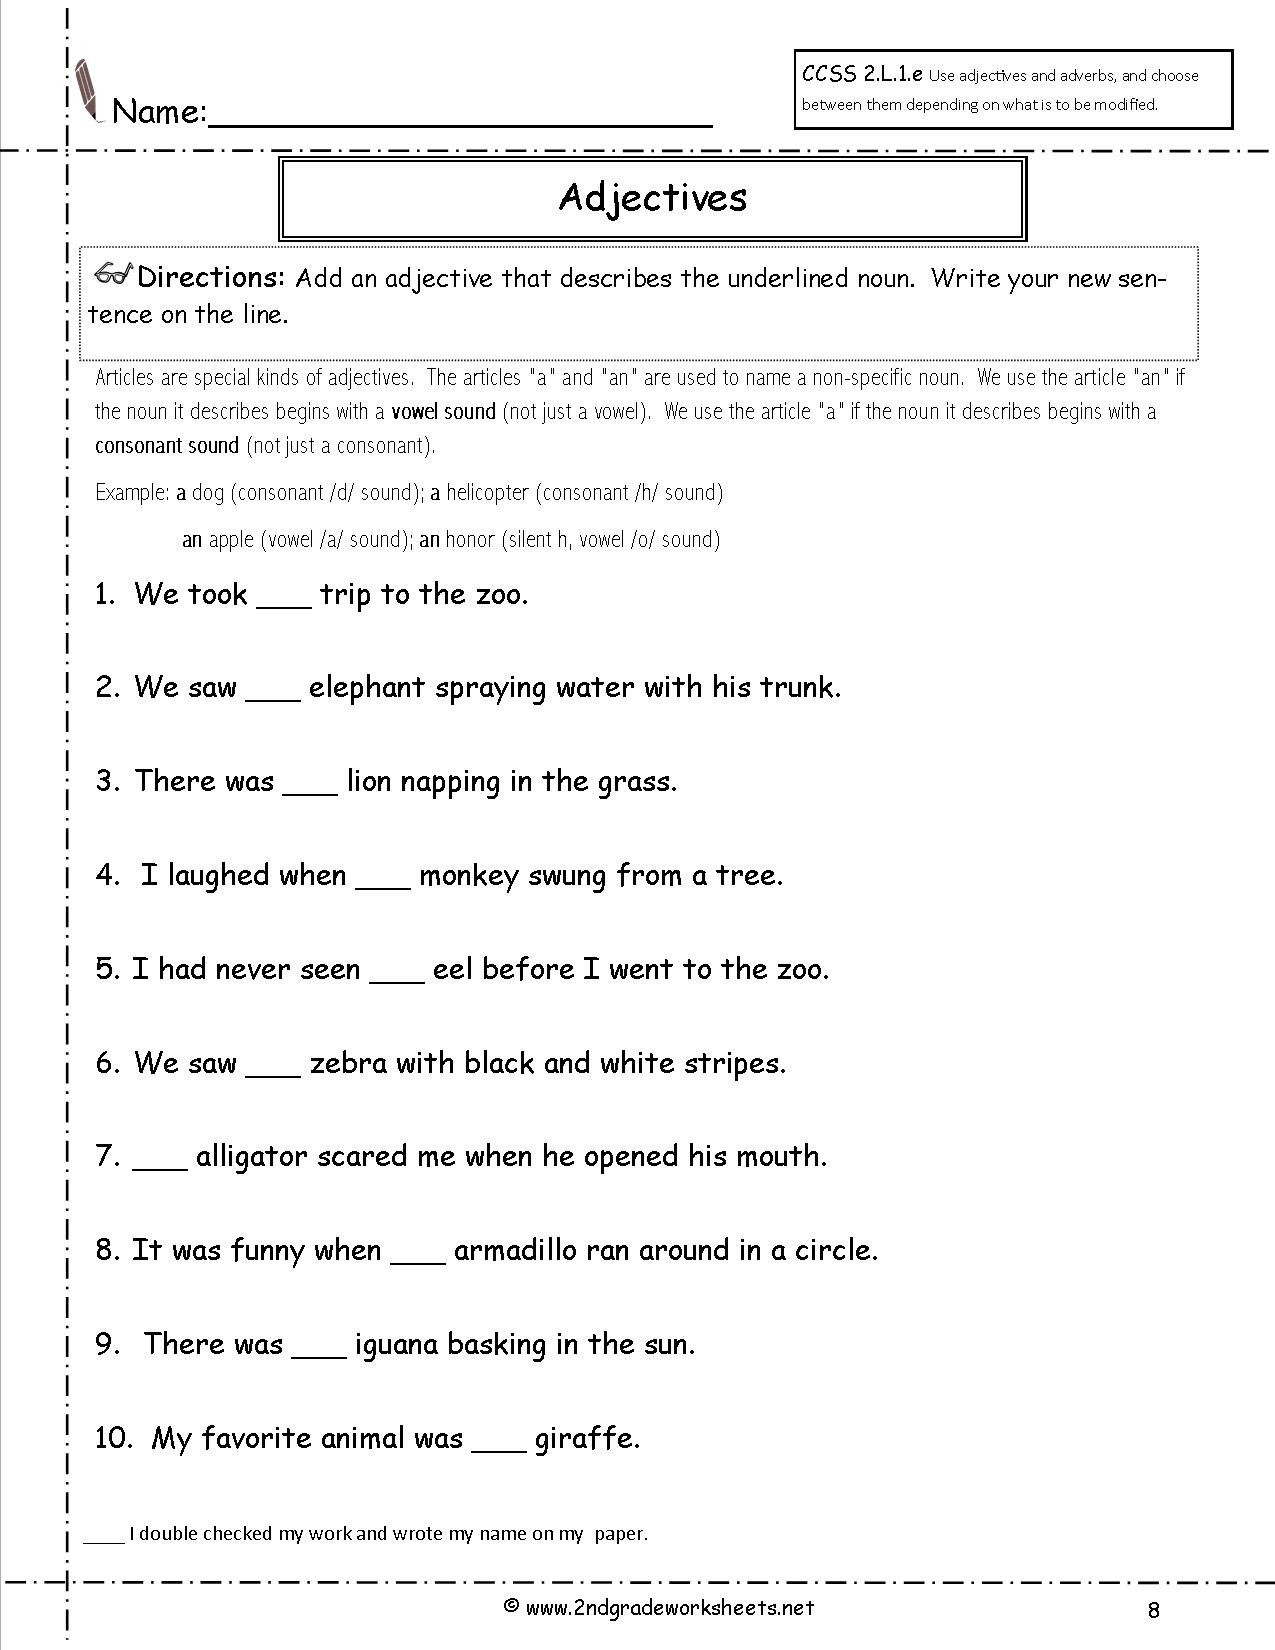 Second Grade Grammar Worksheets Free Language Grammar Worksheets and Printouts 2nd Grade